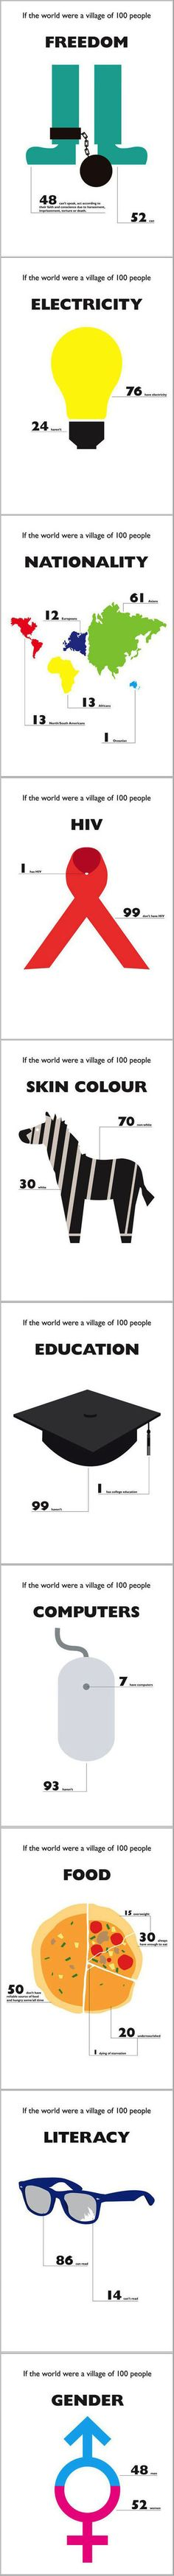 If the world was a village of 100 people, this is how it would breakdown.